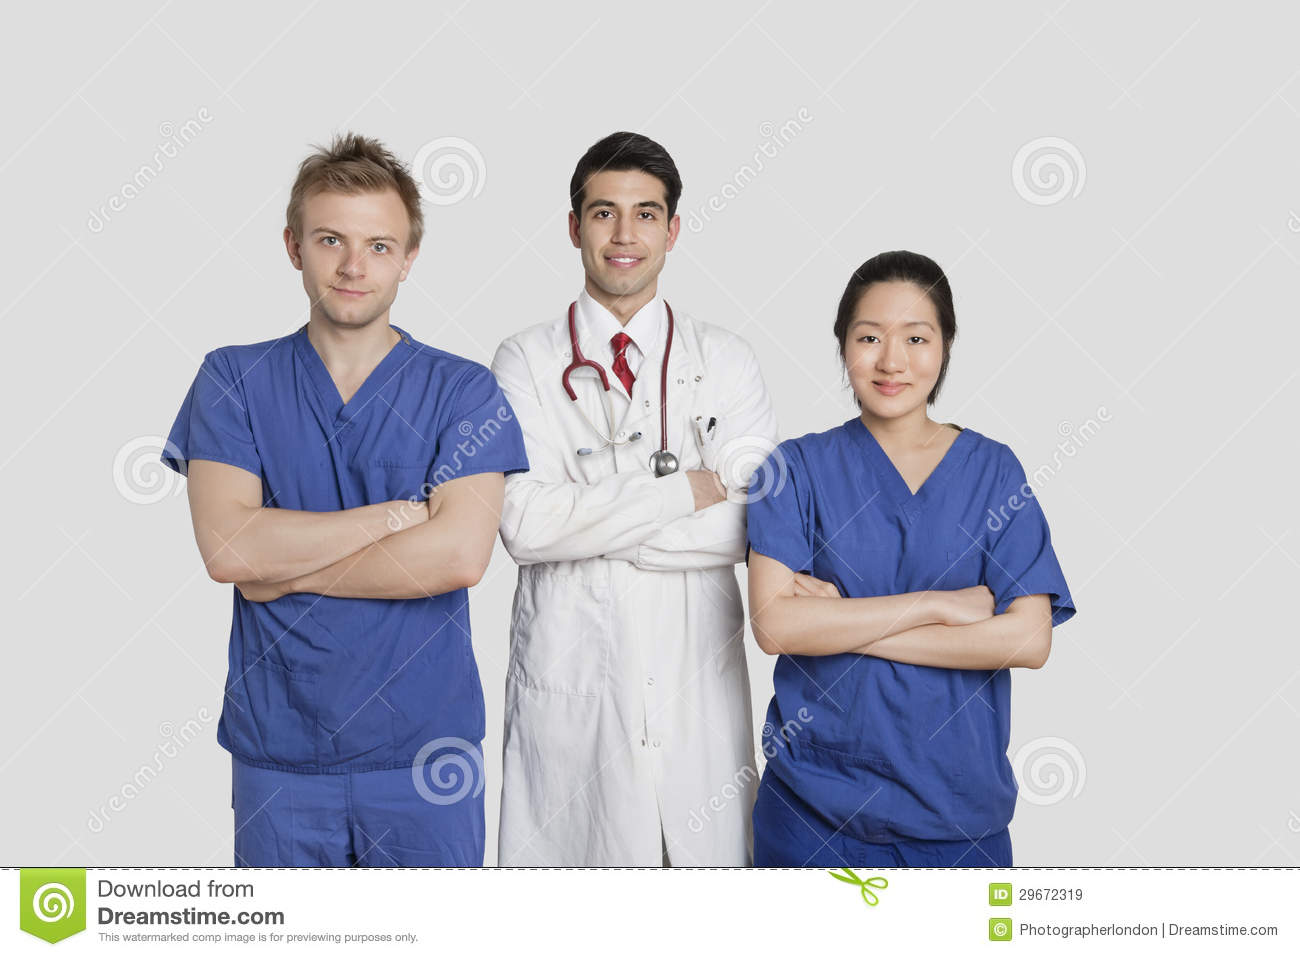 Portrait Of Diverse Healthcare Workers Standing With Hands